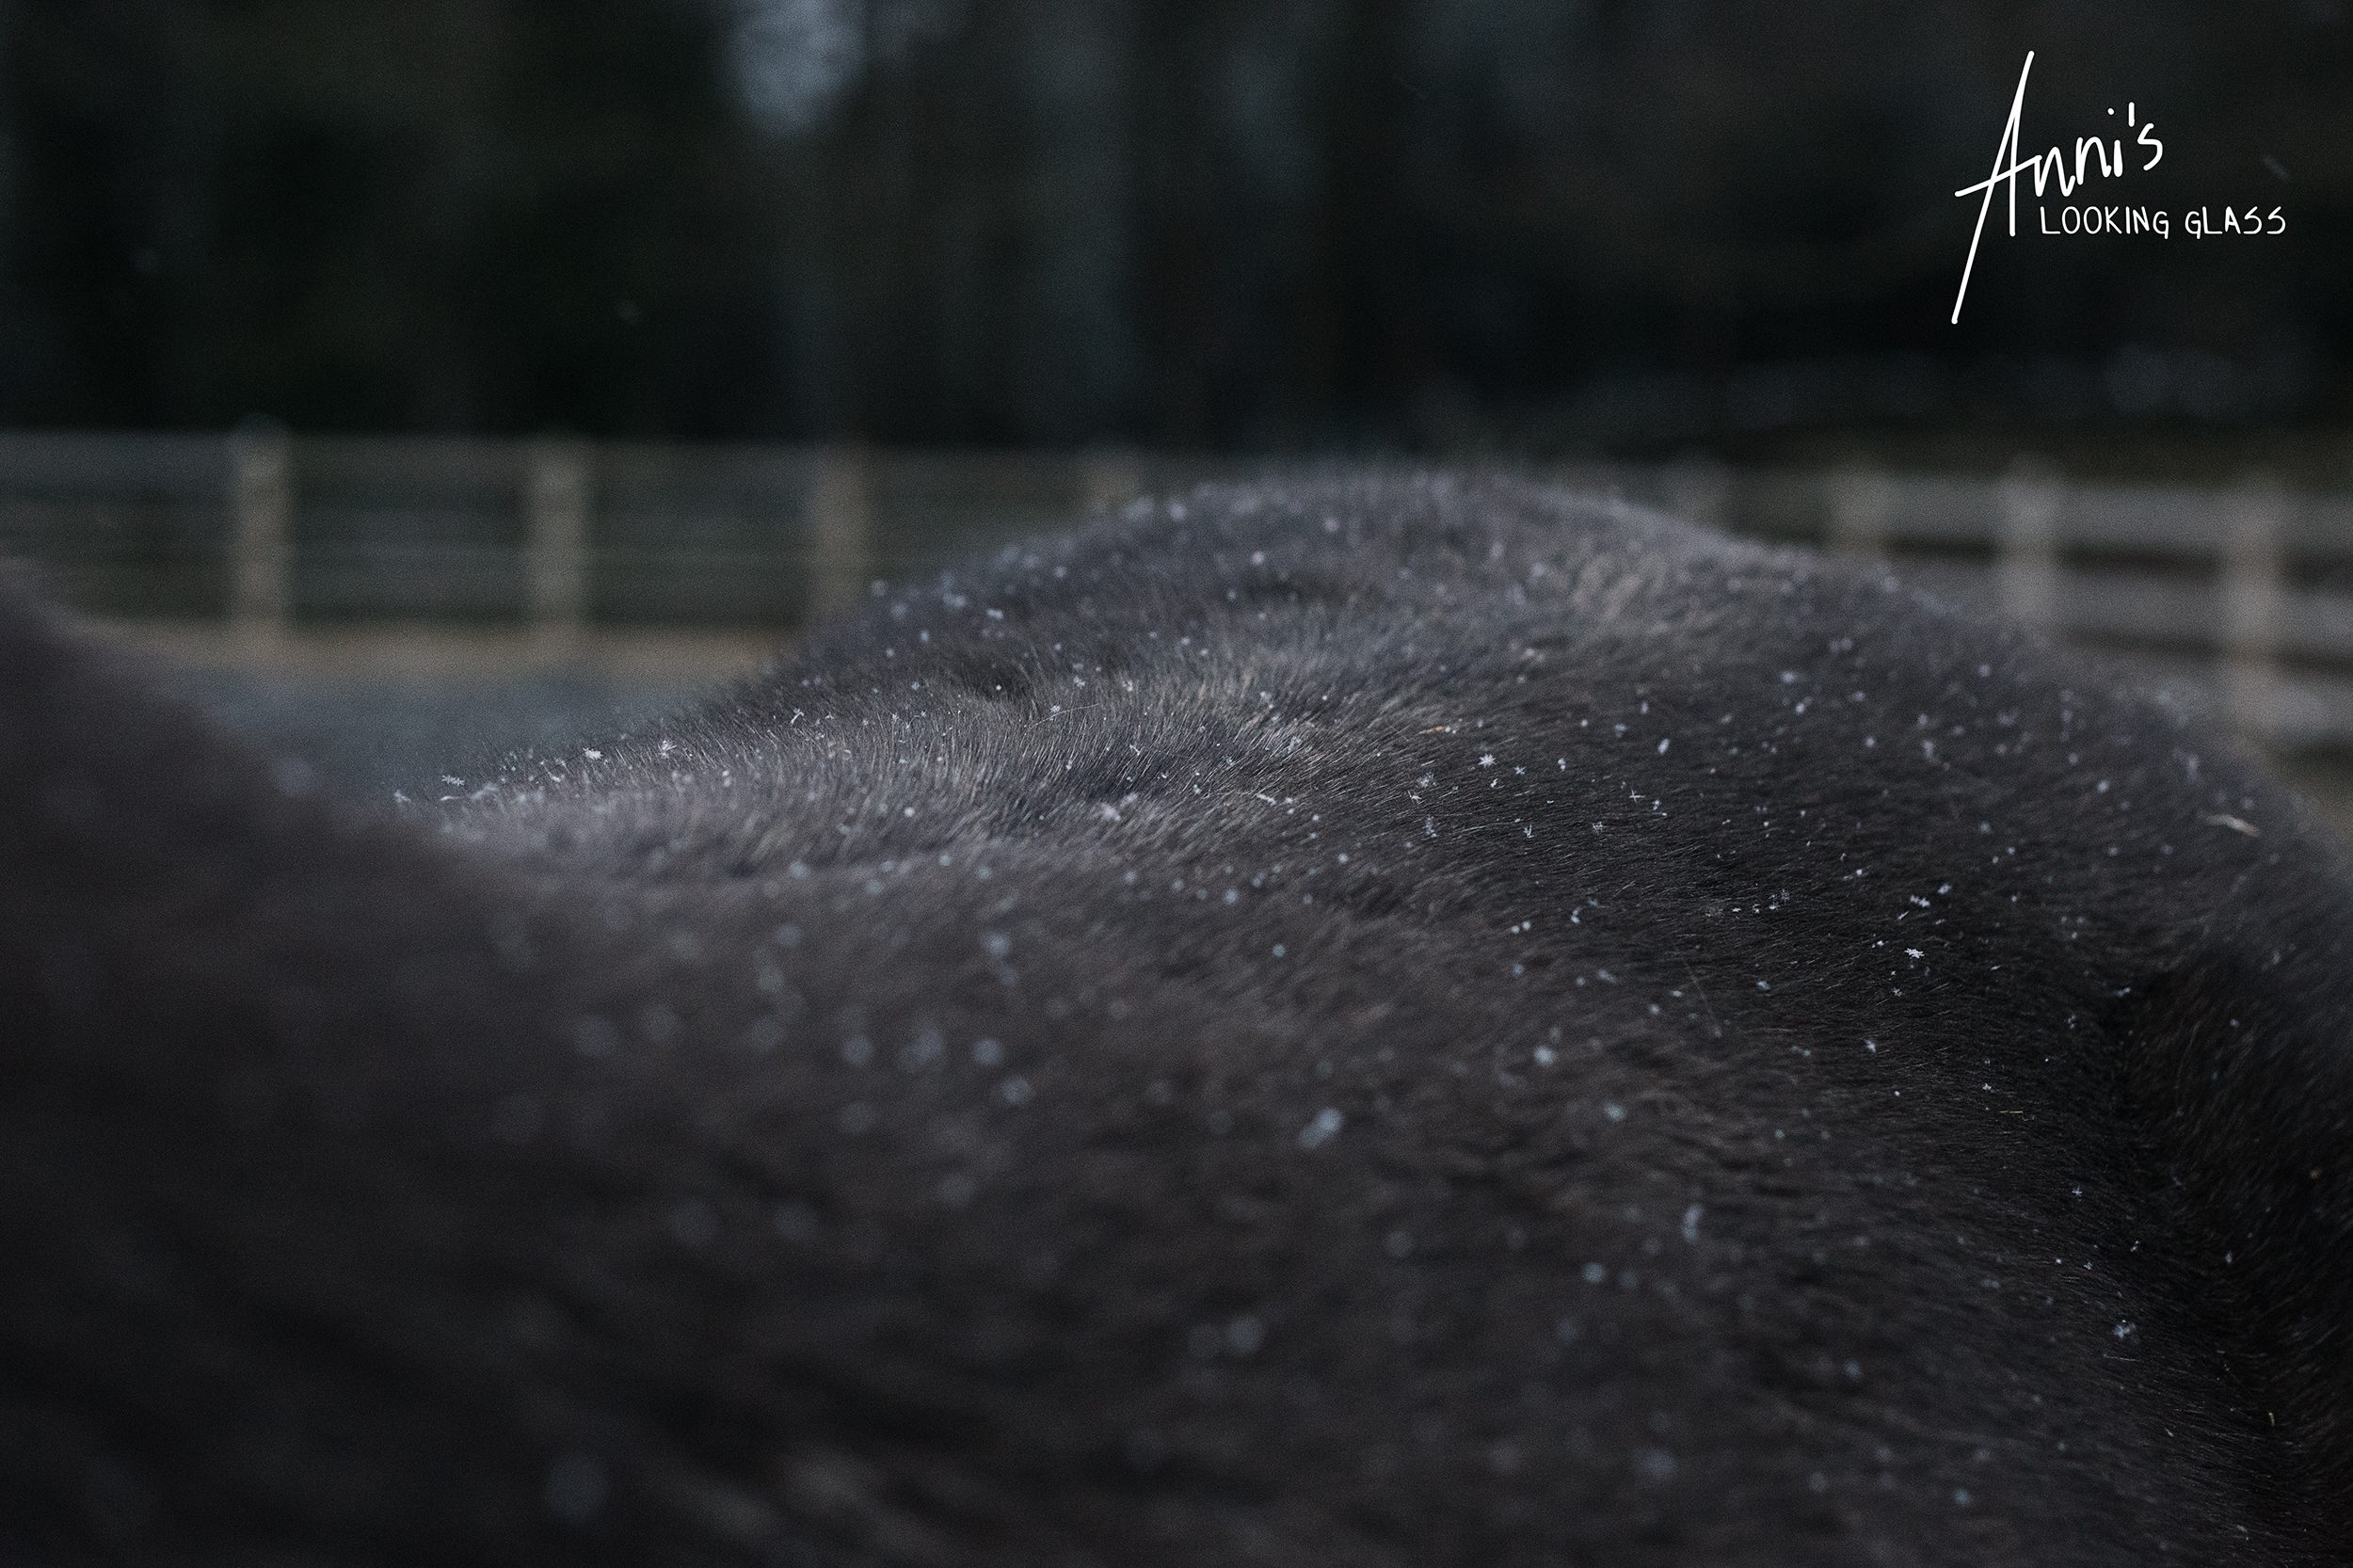 Snowflakes catching in a horse's fur